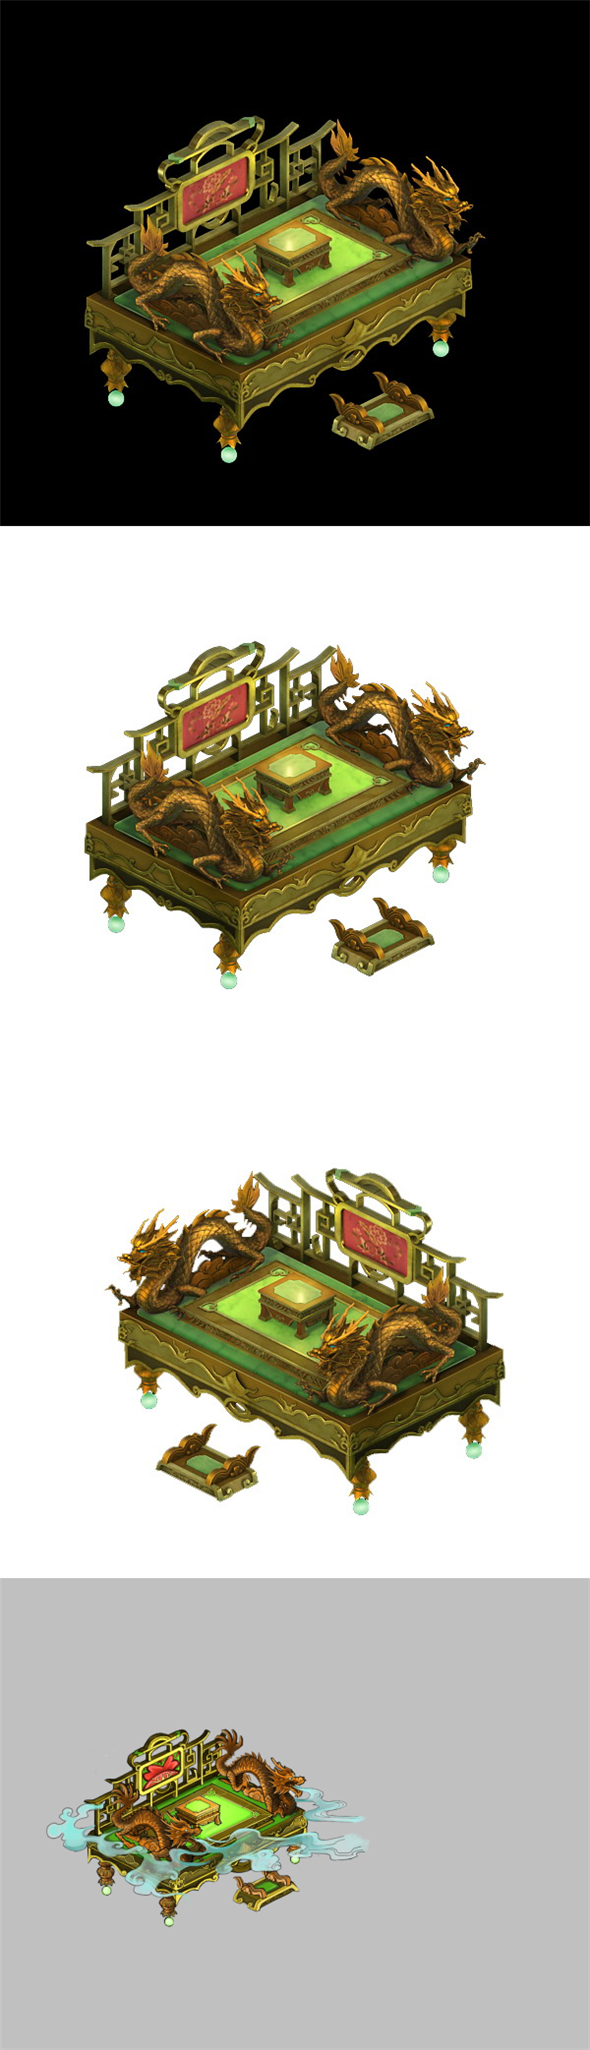 Game Model - Family Objects - Beds 03 - 3DOcean Item for Sale